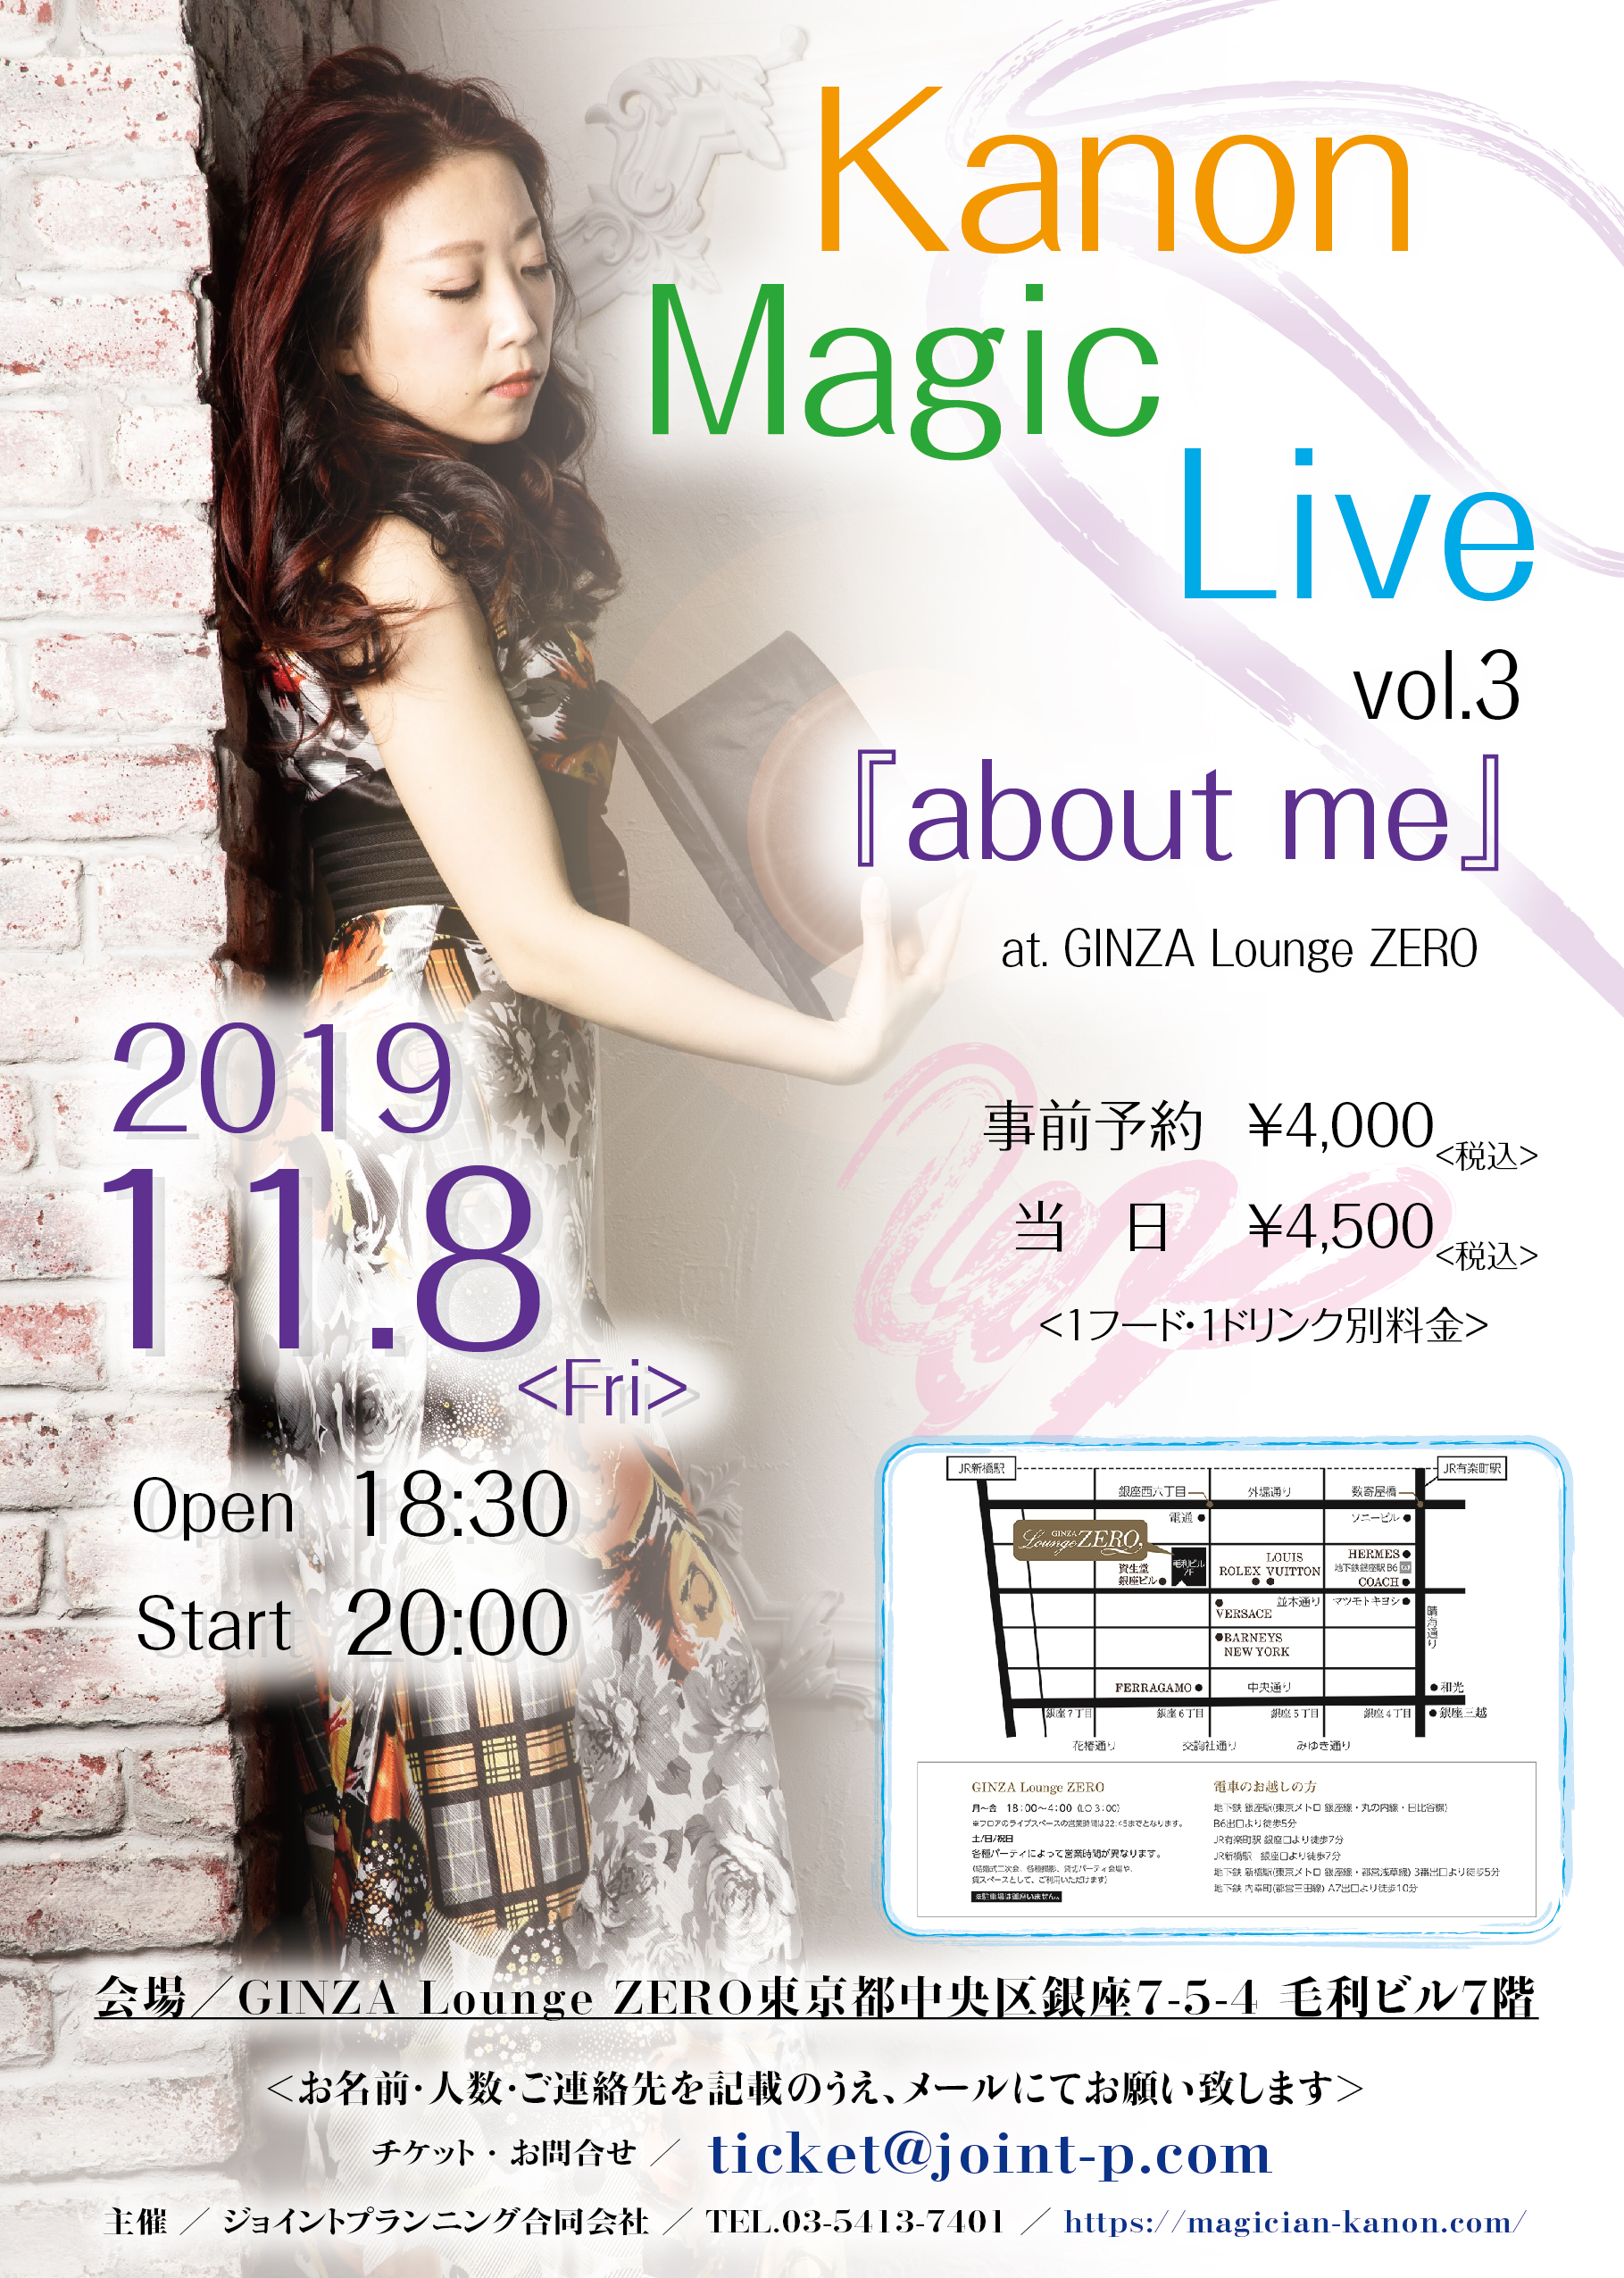 【出演情報】KANON Magic Live vol.3page-visual 【出演情報】KANON Magic Live vol.3ビジュアル